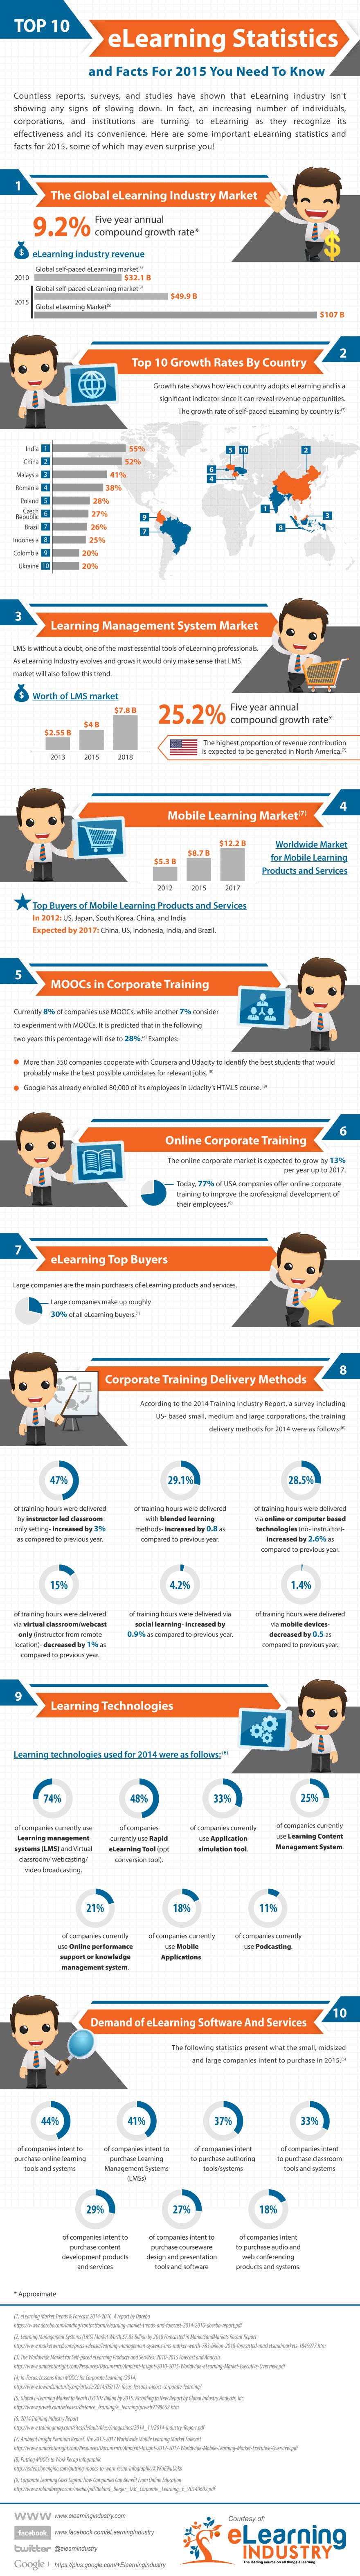 The Top eLearning Stats and Facts For 2015 Infographic